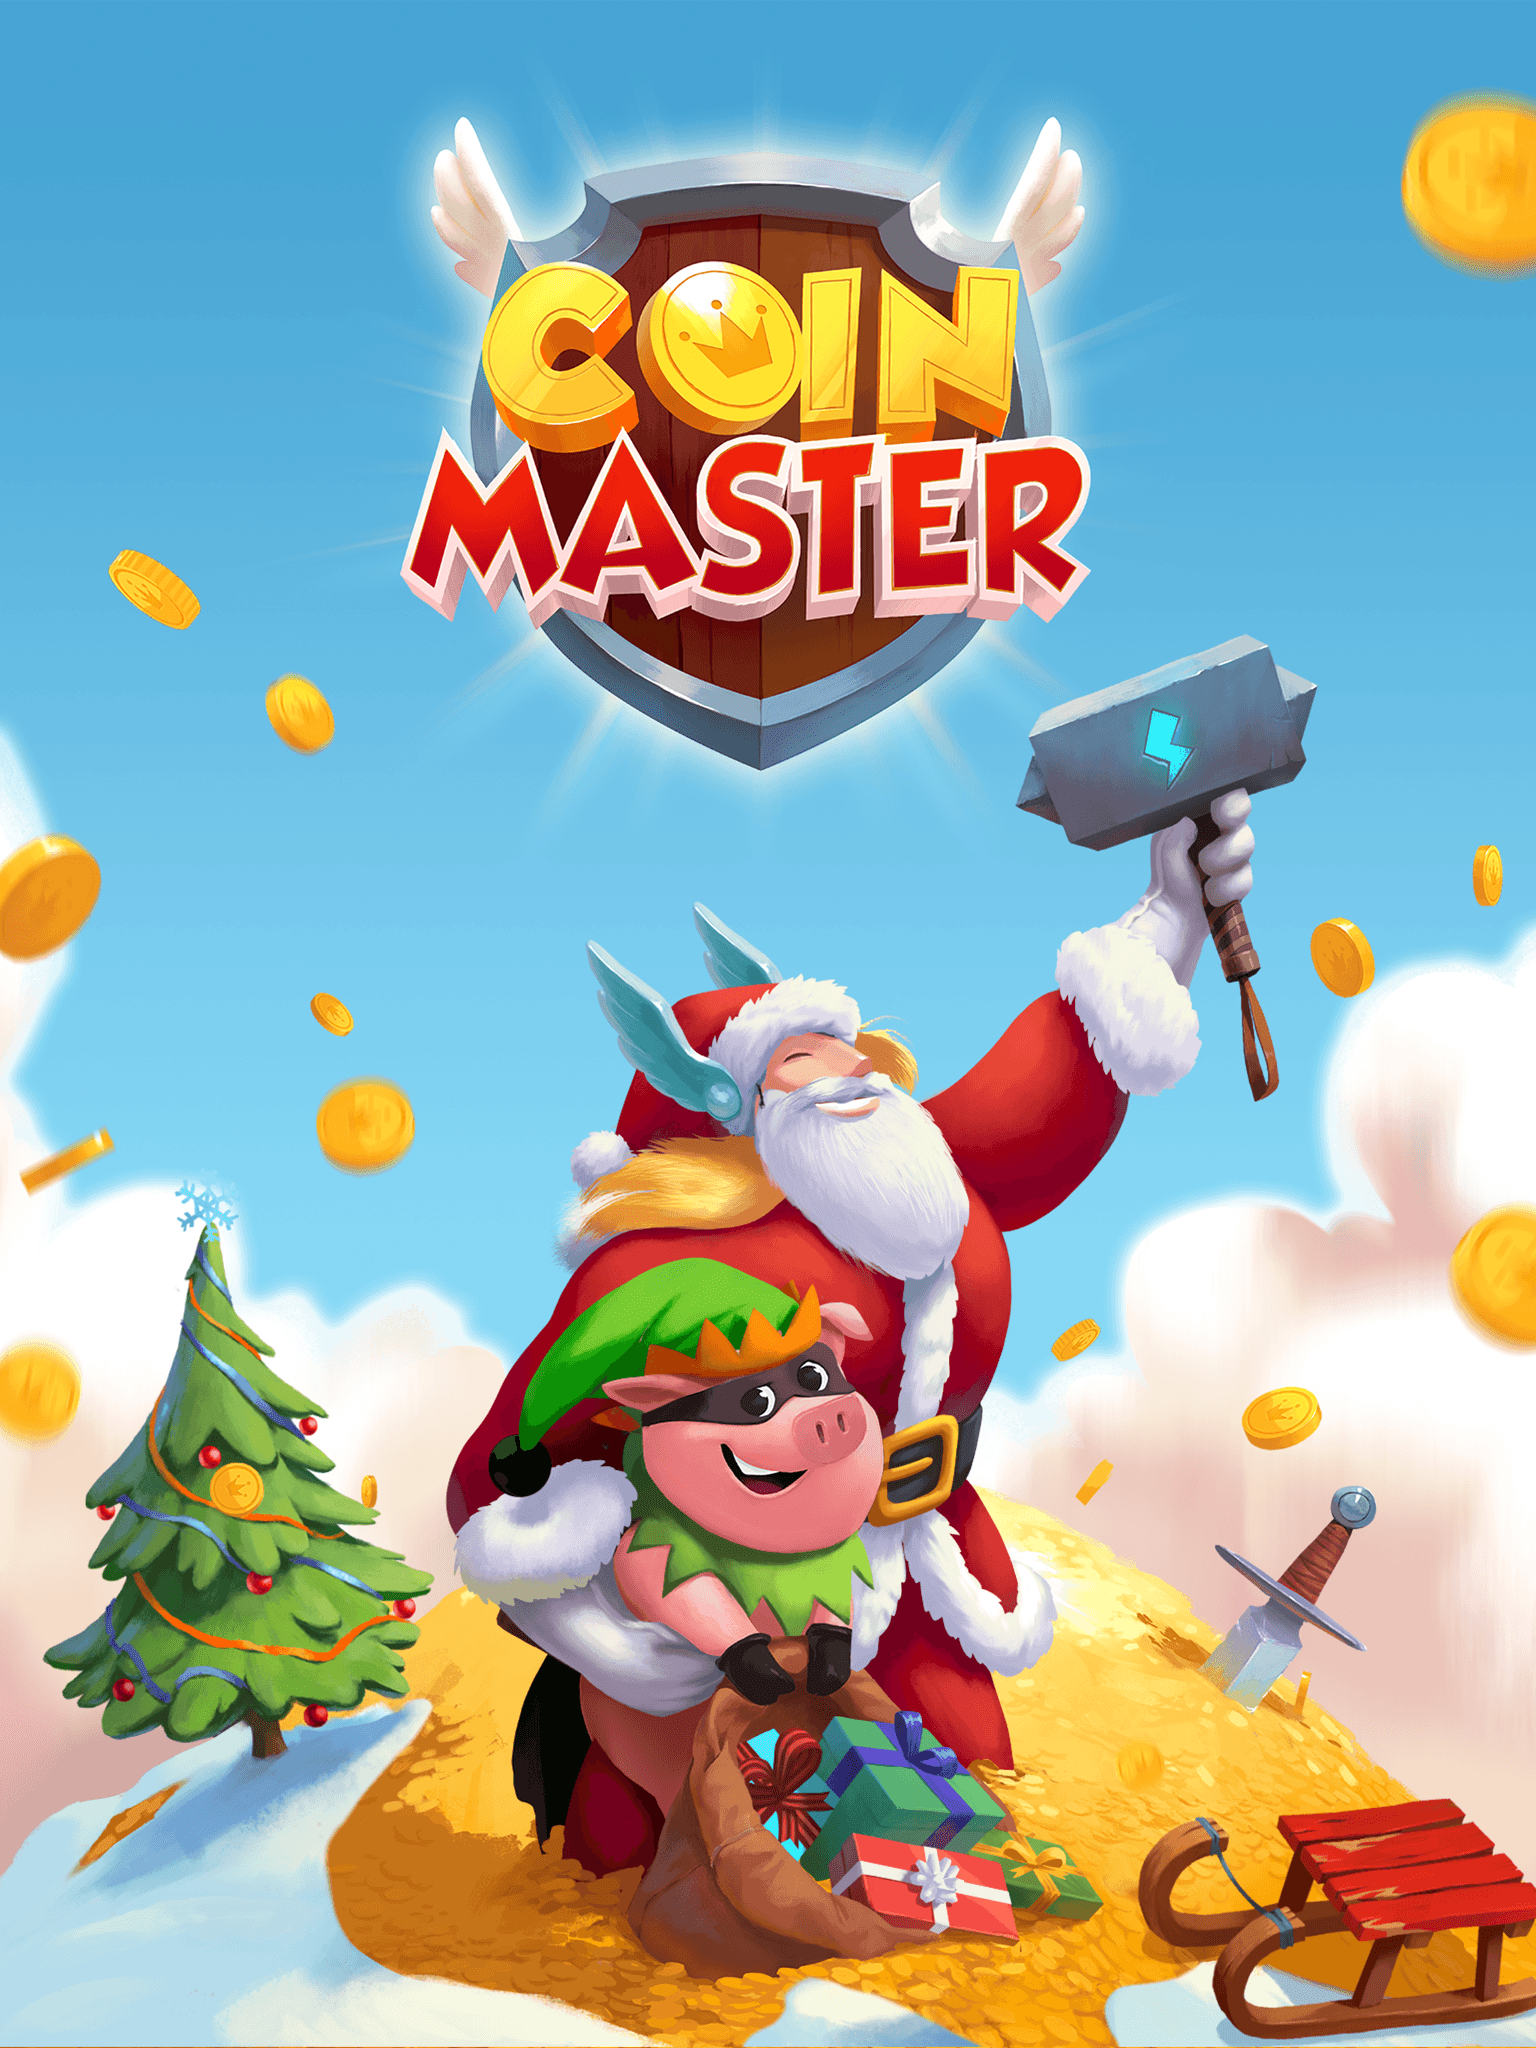 Download Coin Master on PC with BlueStacks